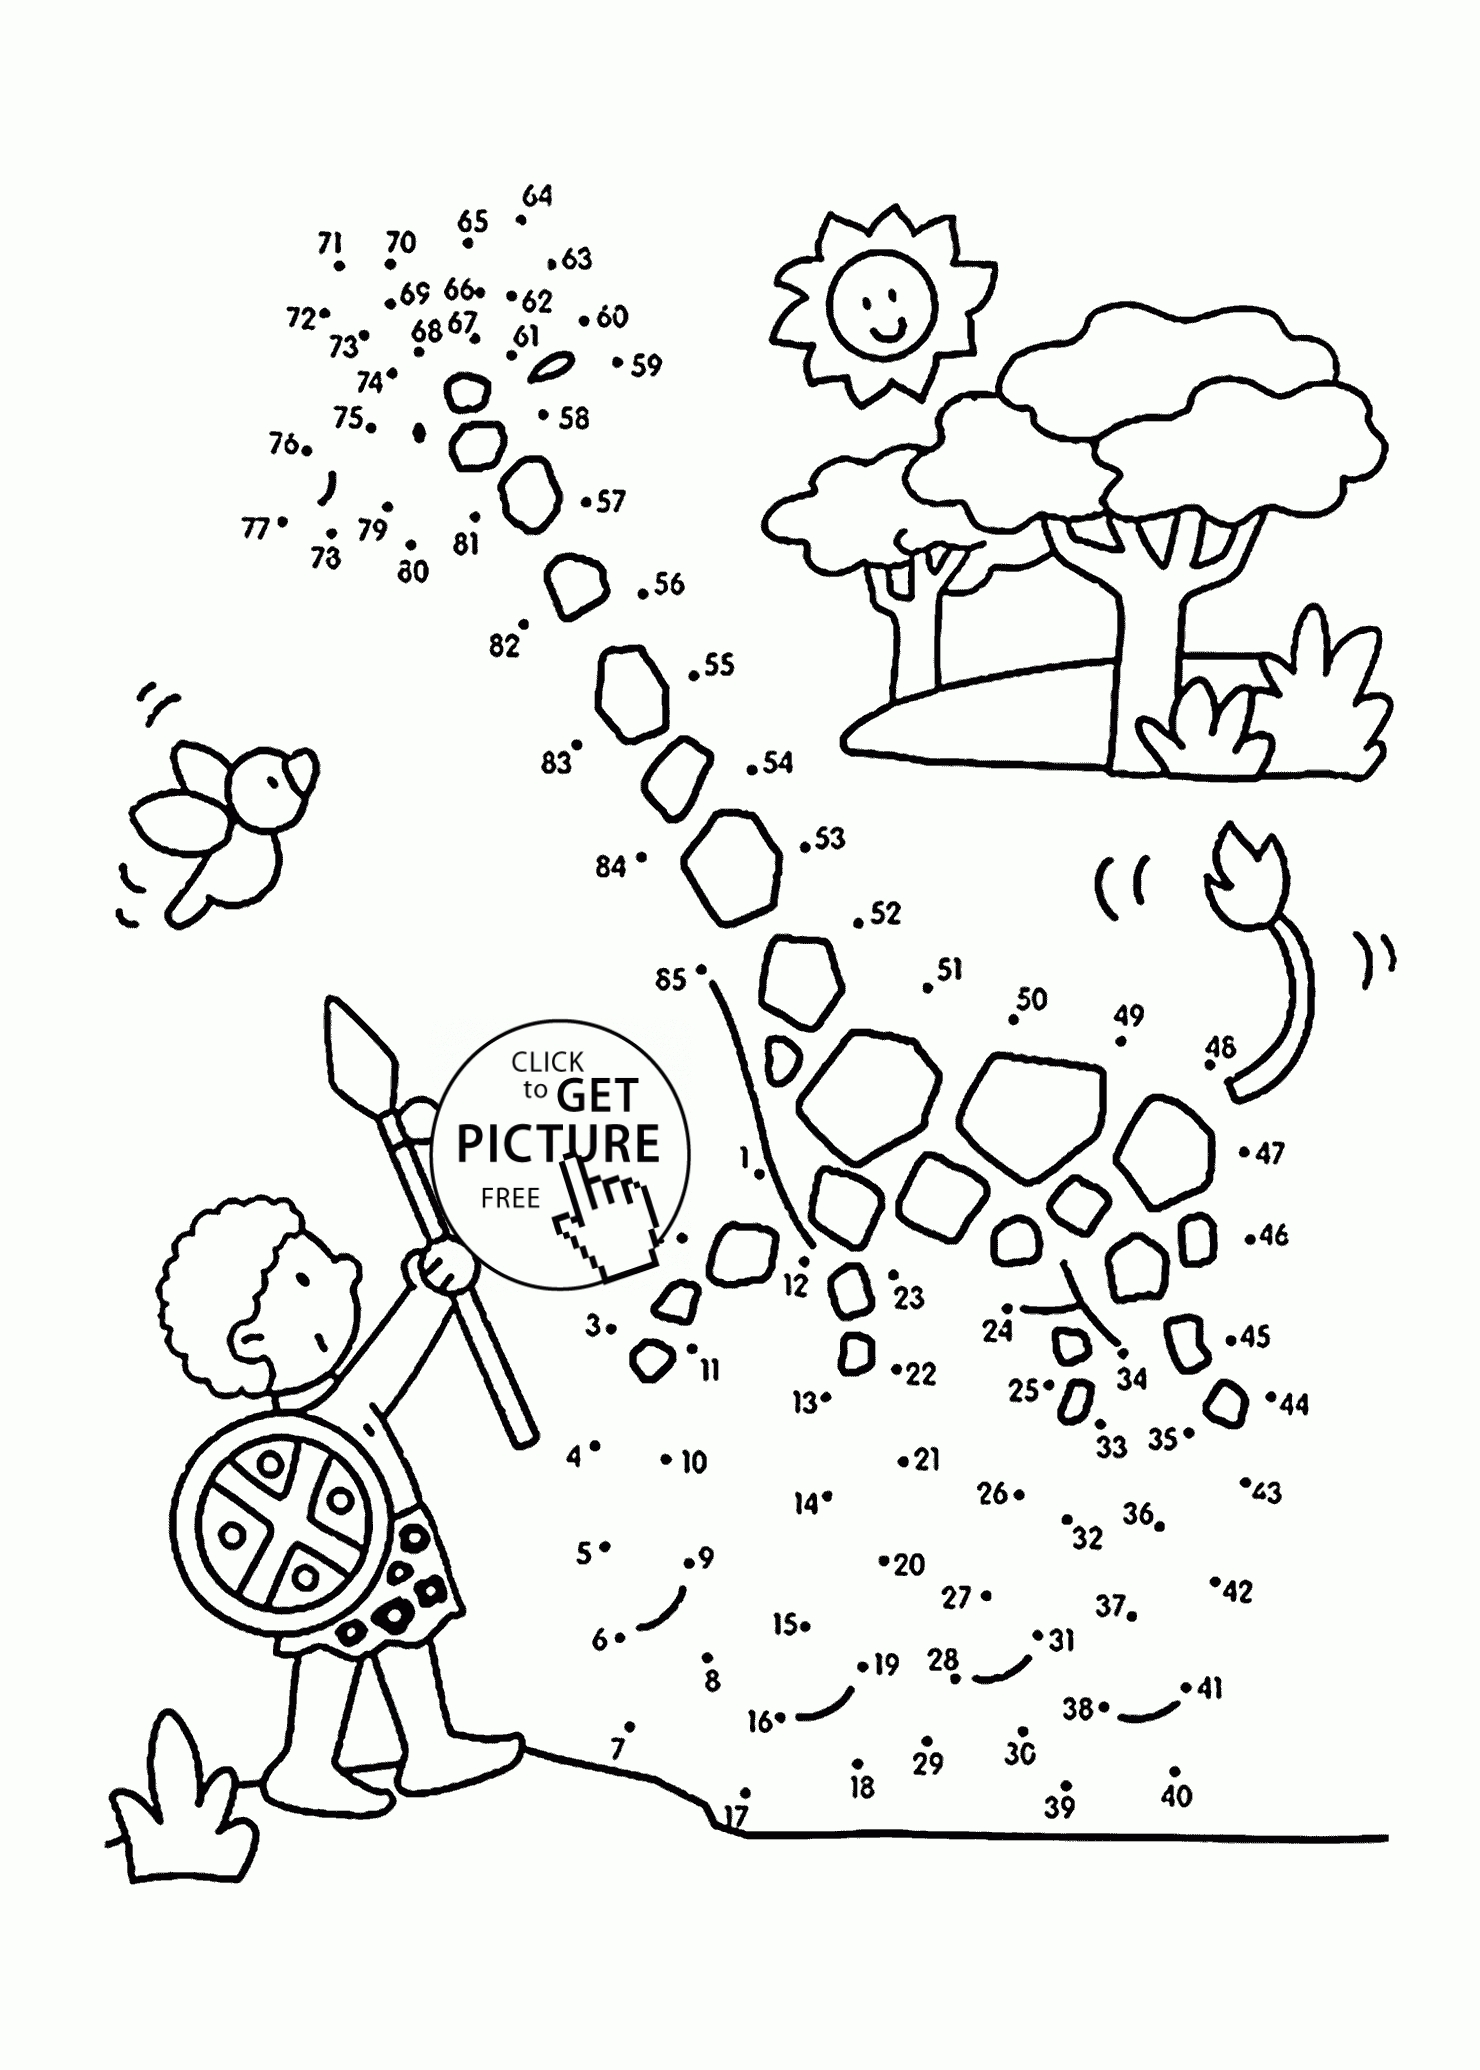 garbage truck coloring page - connect the dots giraffe giraffe dot to dot free printable coloring pages 2